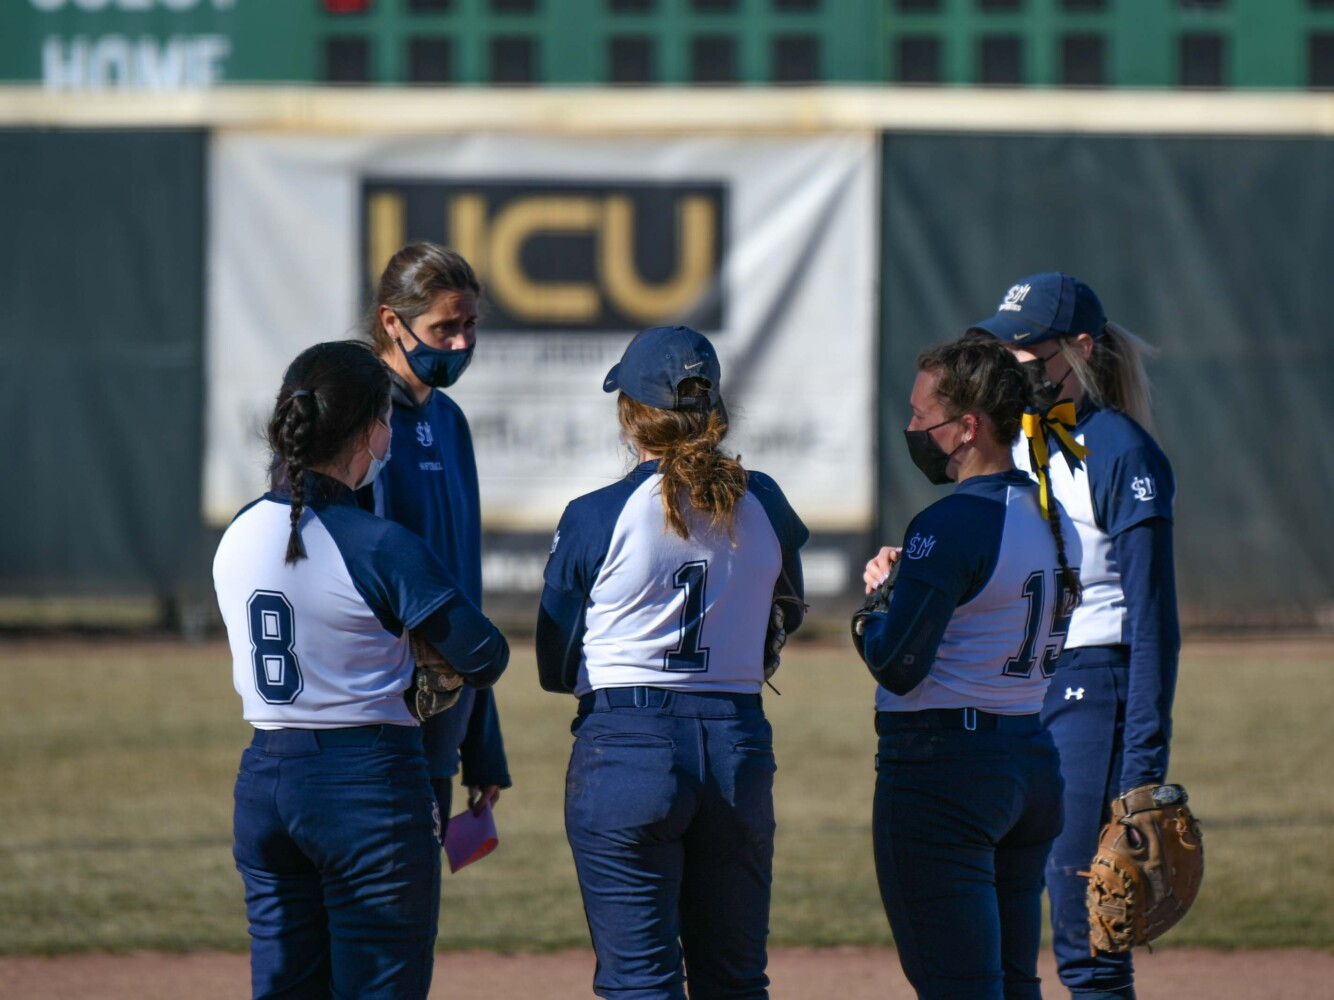 University of Southern Maine softball